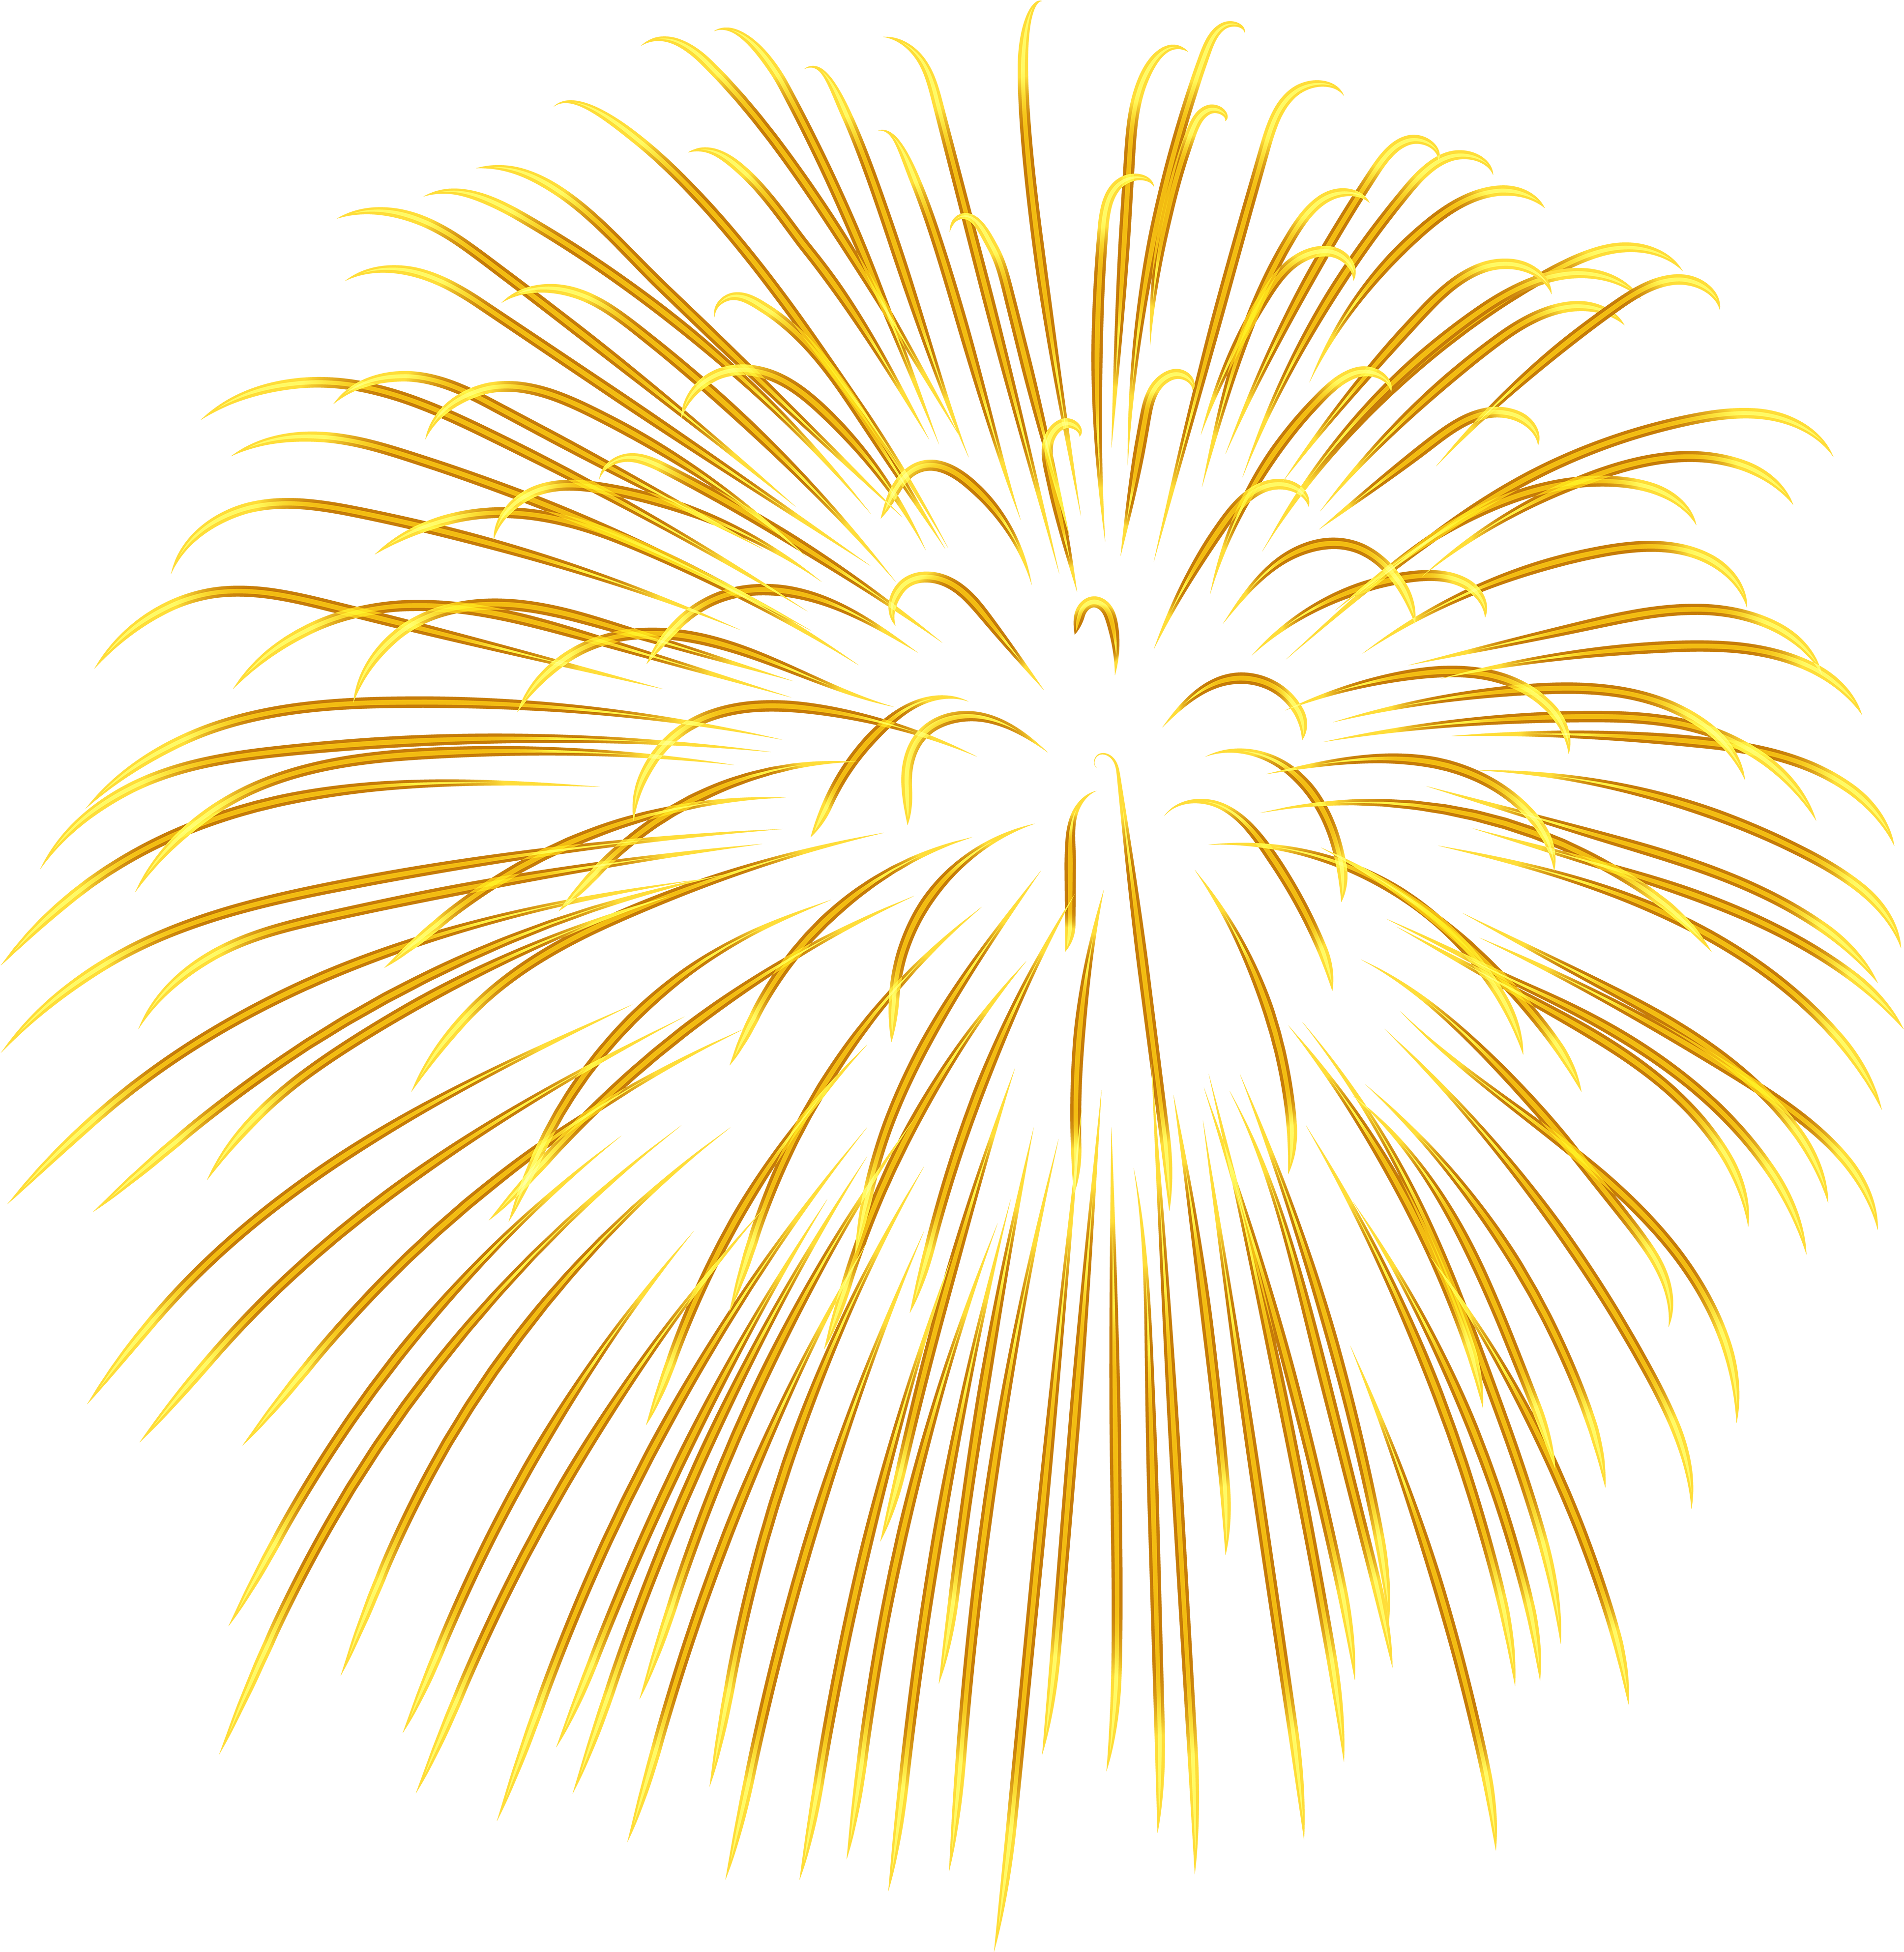 14 clipart transparent clip royalty free Simple 14 Cliparts For Free - Transparent Background Fireworks ... clip royalty free